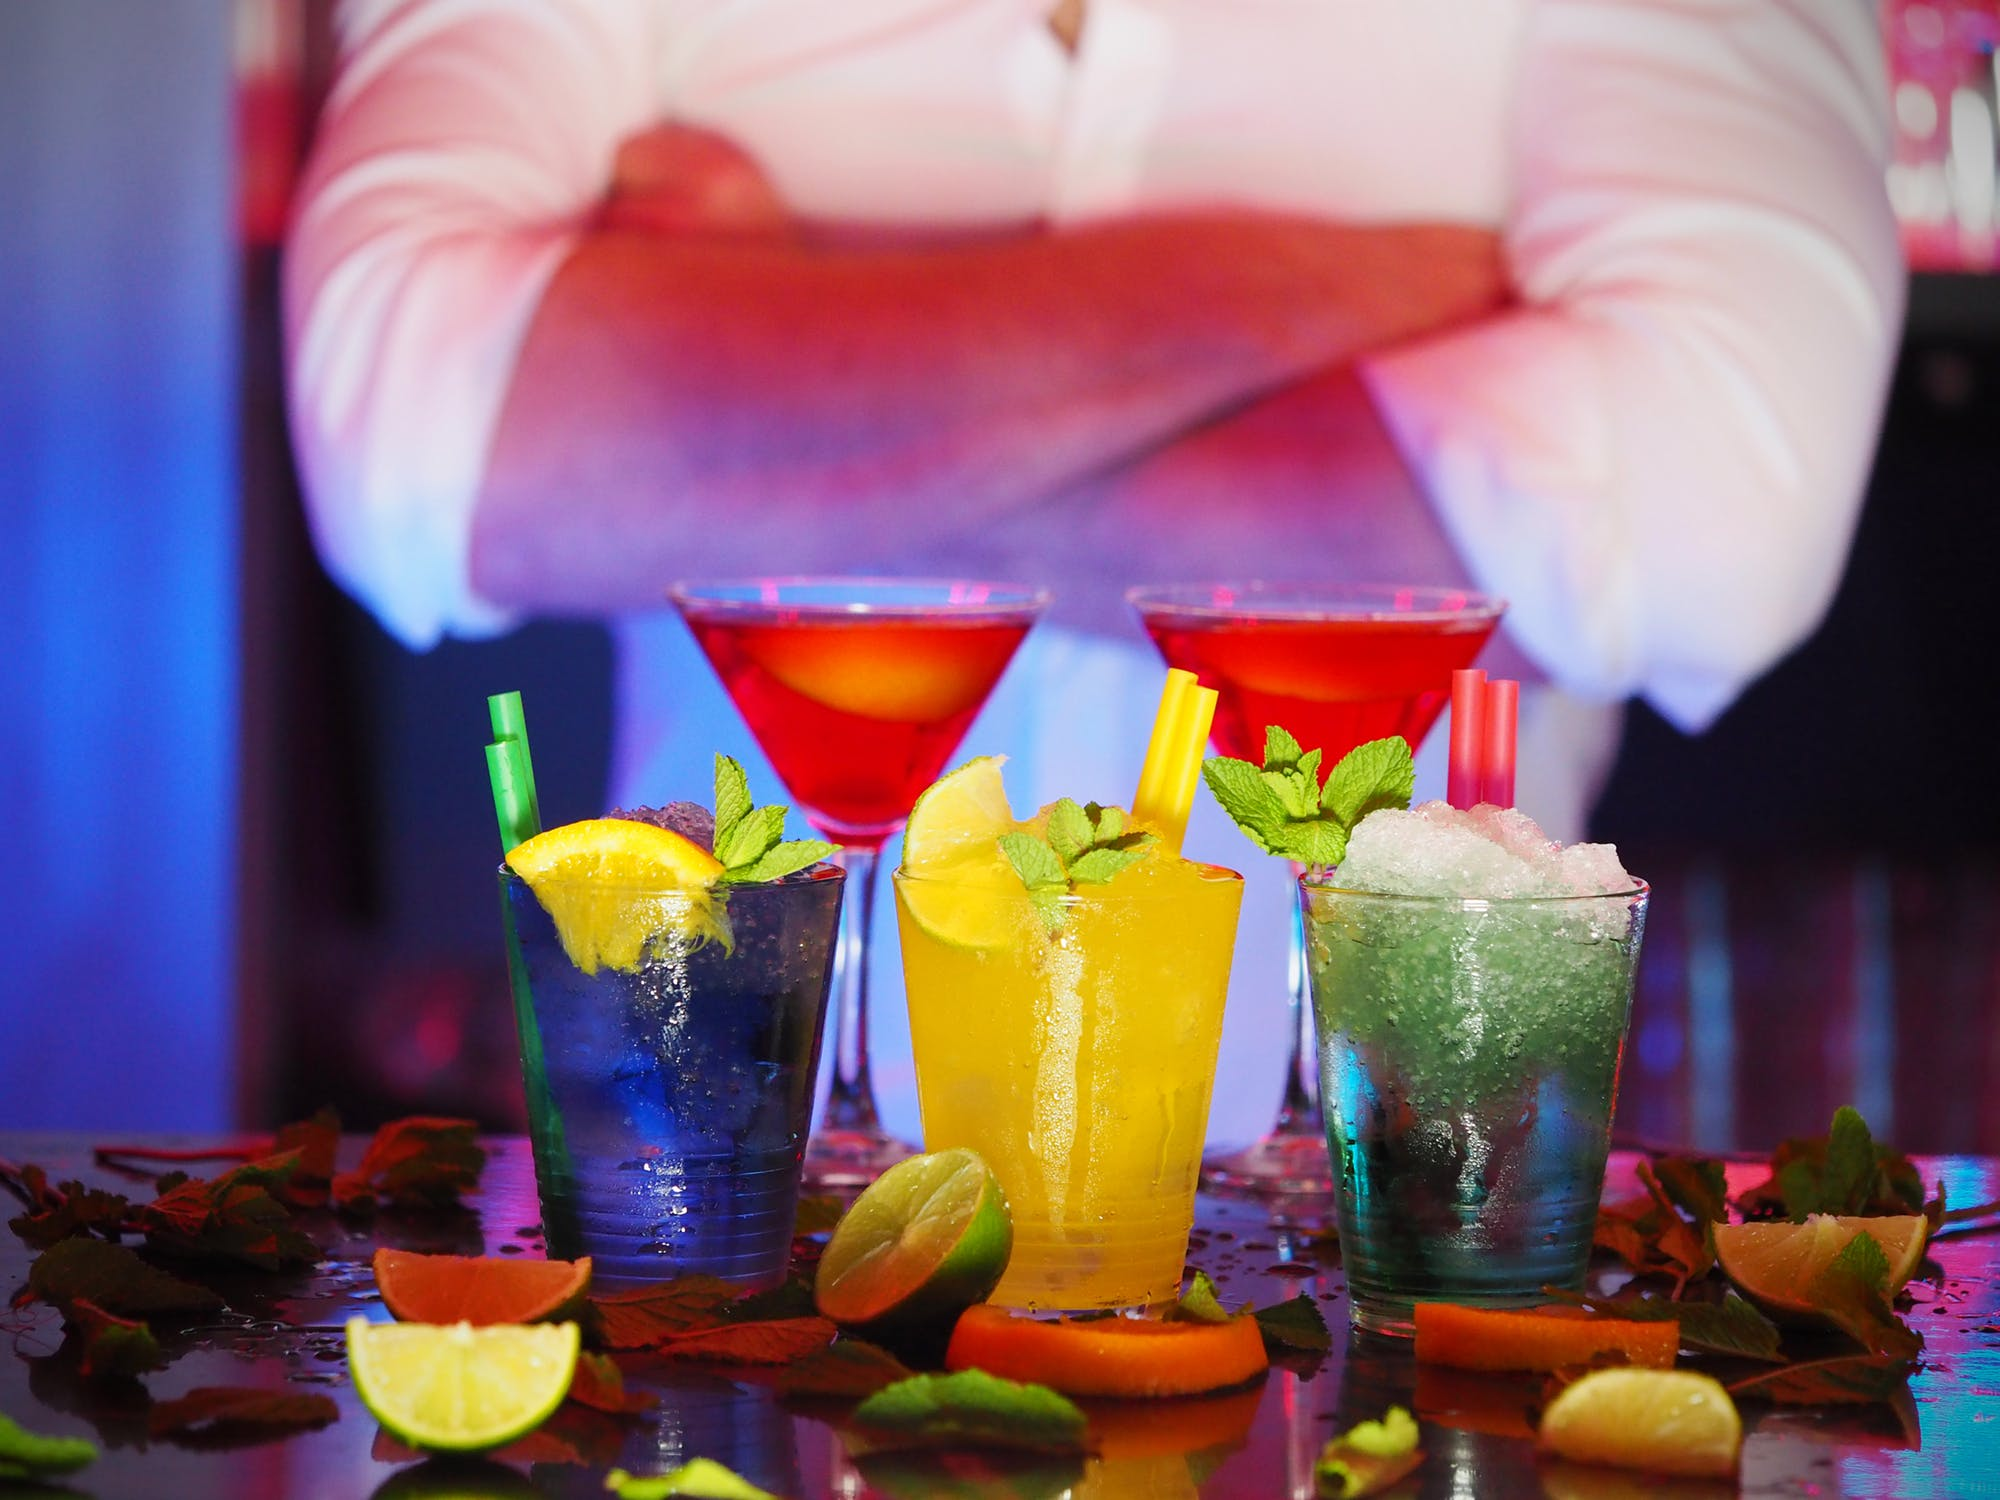 Liquor licenses in South Africa